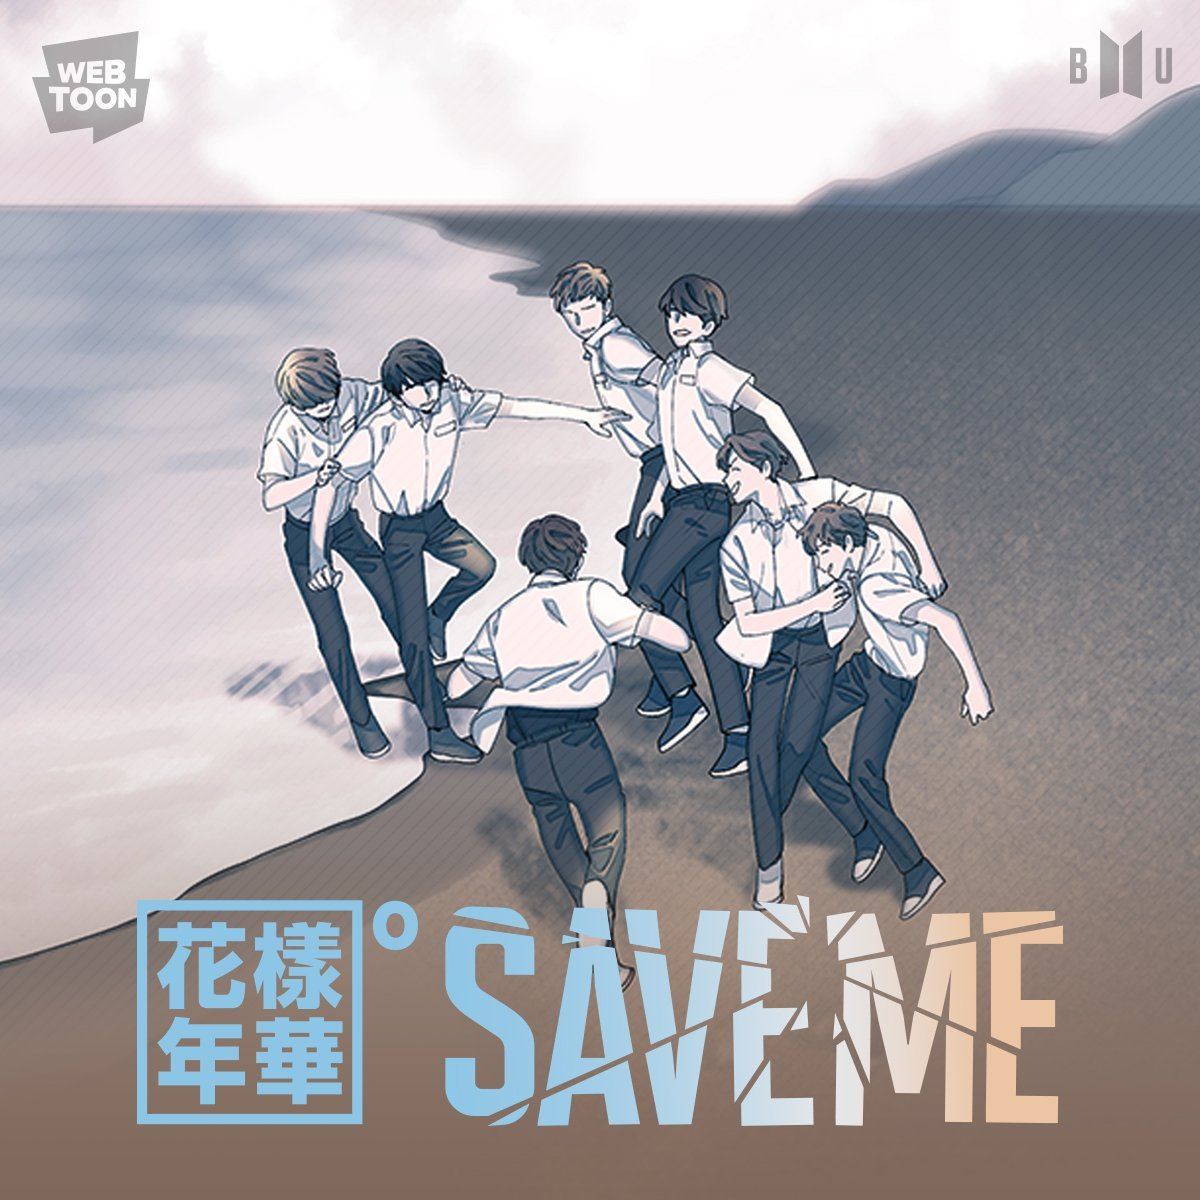 this is so good, omg. they prepared this, finally the history will be told. the truth will be told. hope we&#39;ll understand now. already read everything and god i had so many chills down my spine and my heart froze. i hope jin will save them all, i want a happy ending ; ; #SAVE_ME<br>http://pic.twitter.com/KcyvX8nzVp